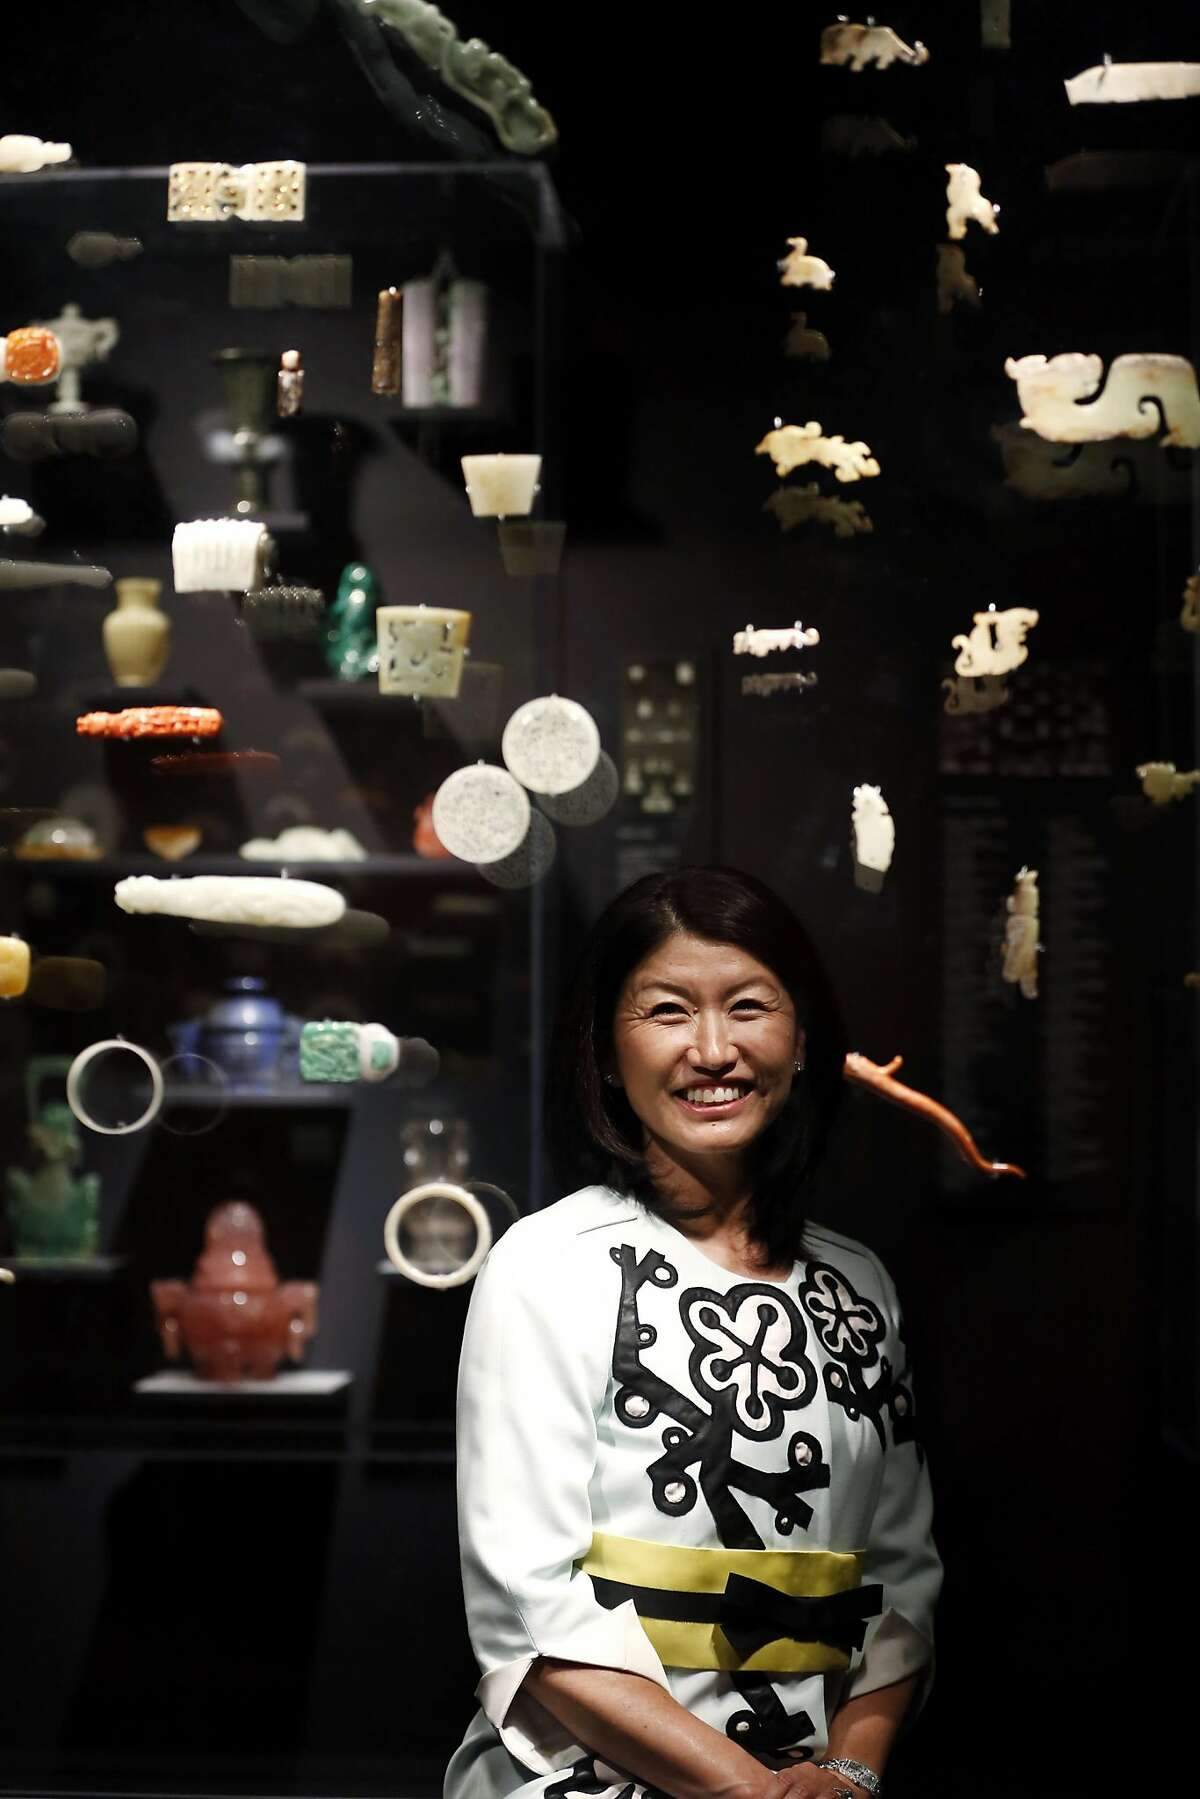 Akiko Yamazaki, chairwoman of the board of the Asian Art Museum, poses for a photograph through a display case filled with jade pieces in the Asian Art Museum in San Francisco, California, on Thursday, April 7, 2016.